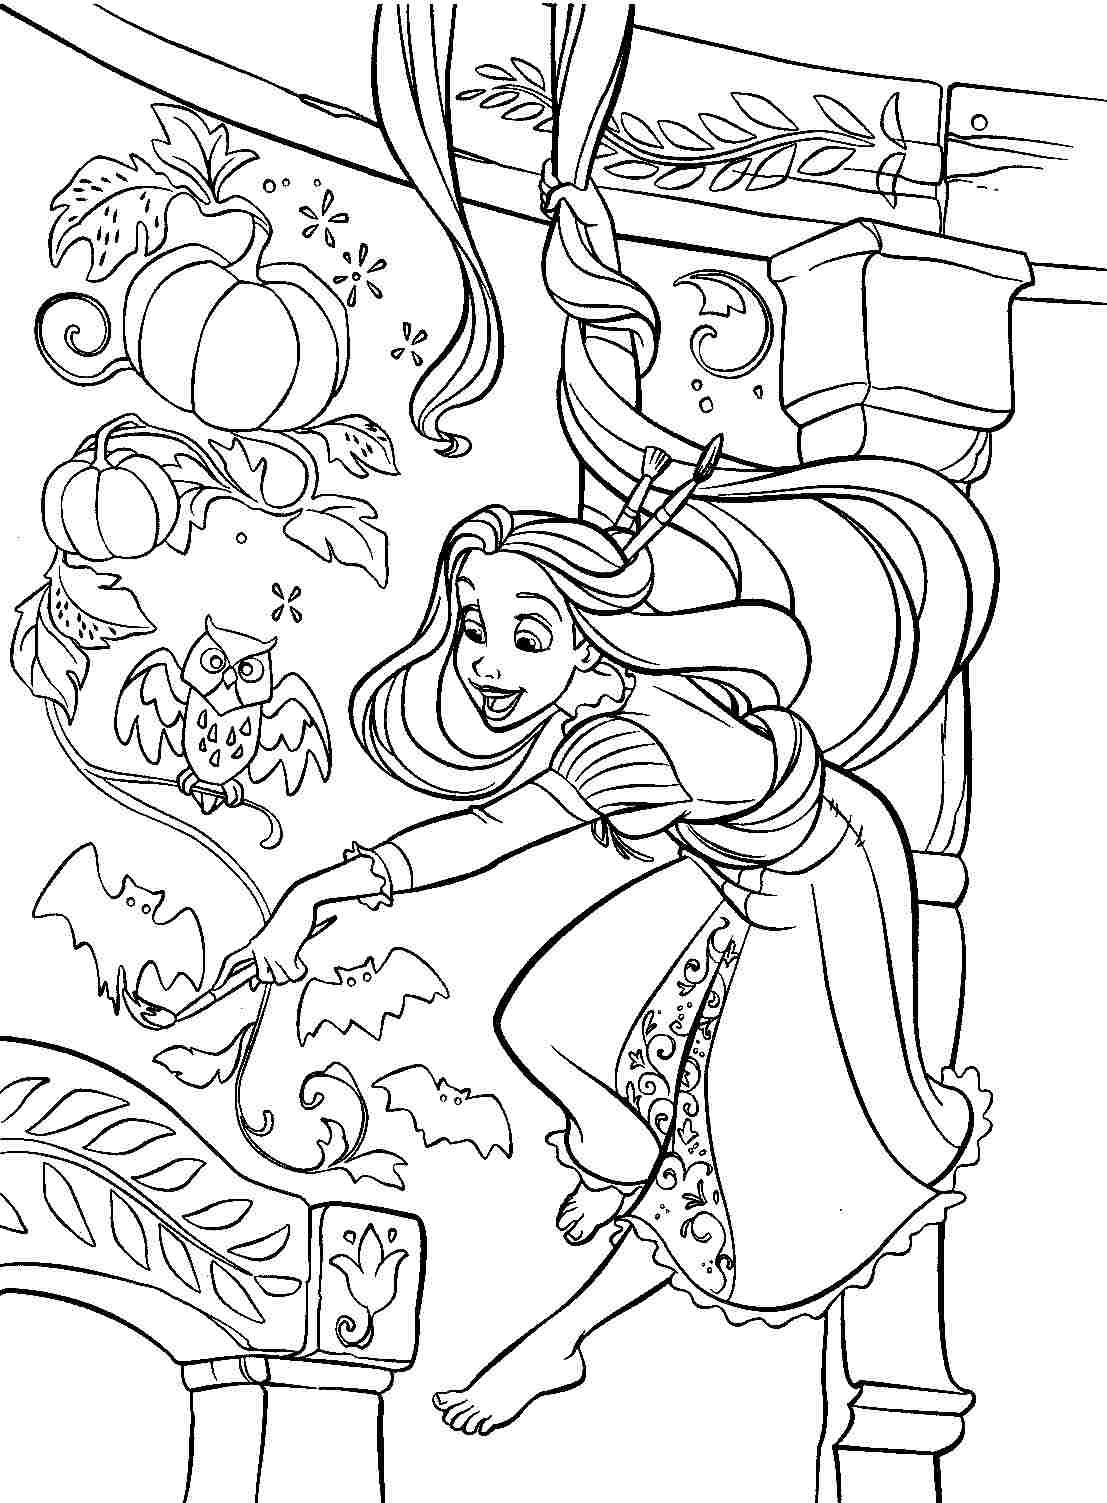 Coloring Pages Halloween Princess : Free printable coloring pages disney princess tangled